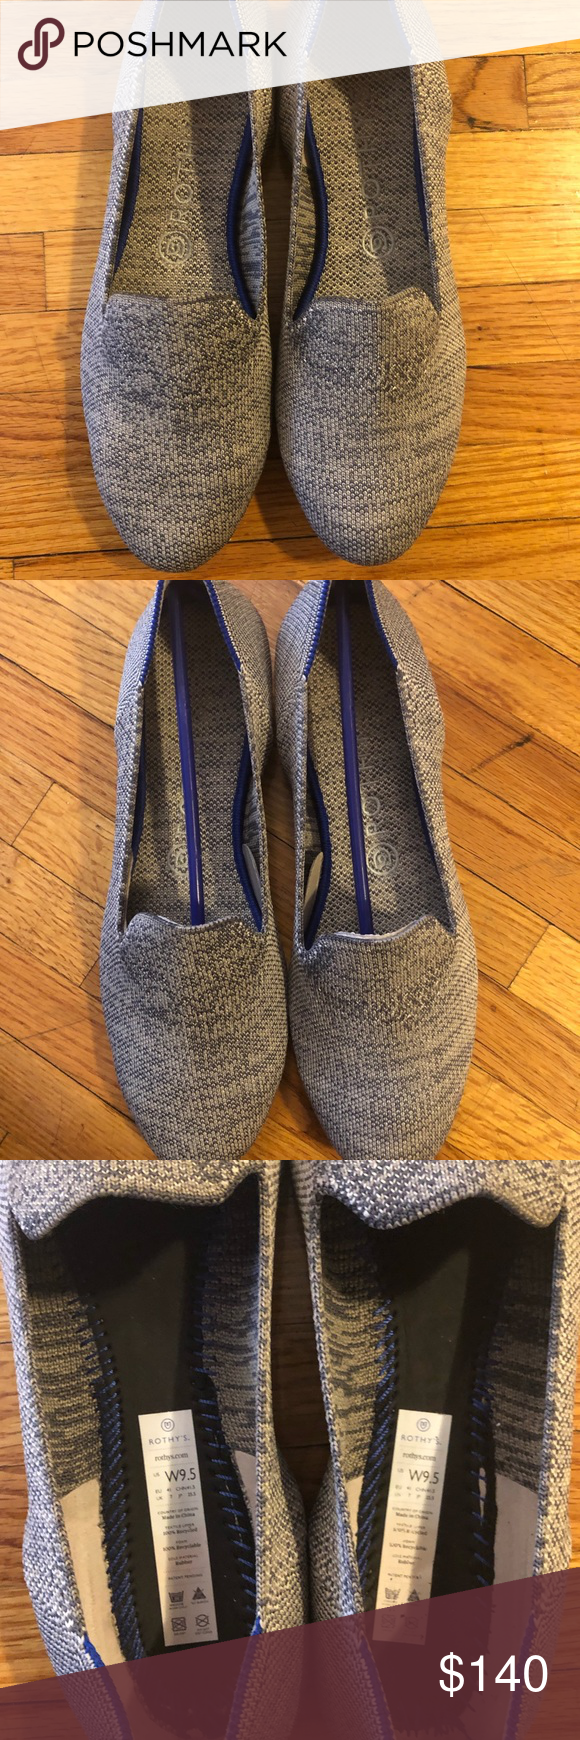 Rothy S Taupe Heather Loafers 9 5 Purchased Direct From And Worn Only Once Heathered Grey Color With Blue White Heel Stripe